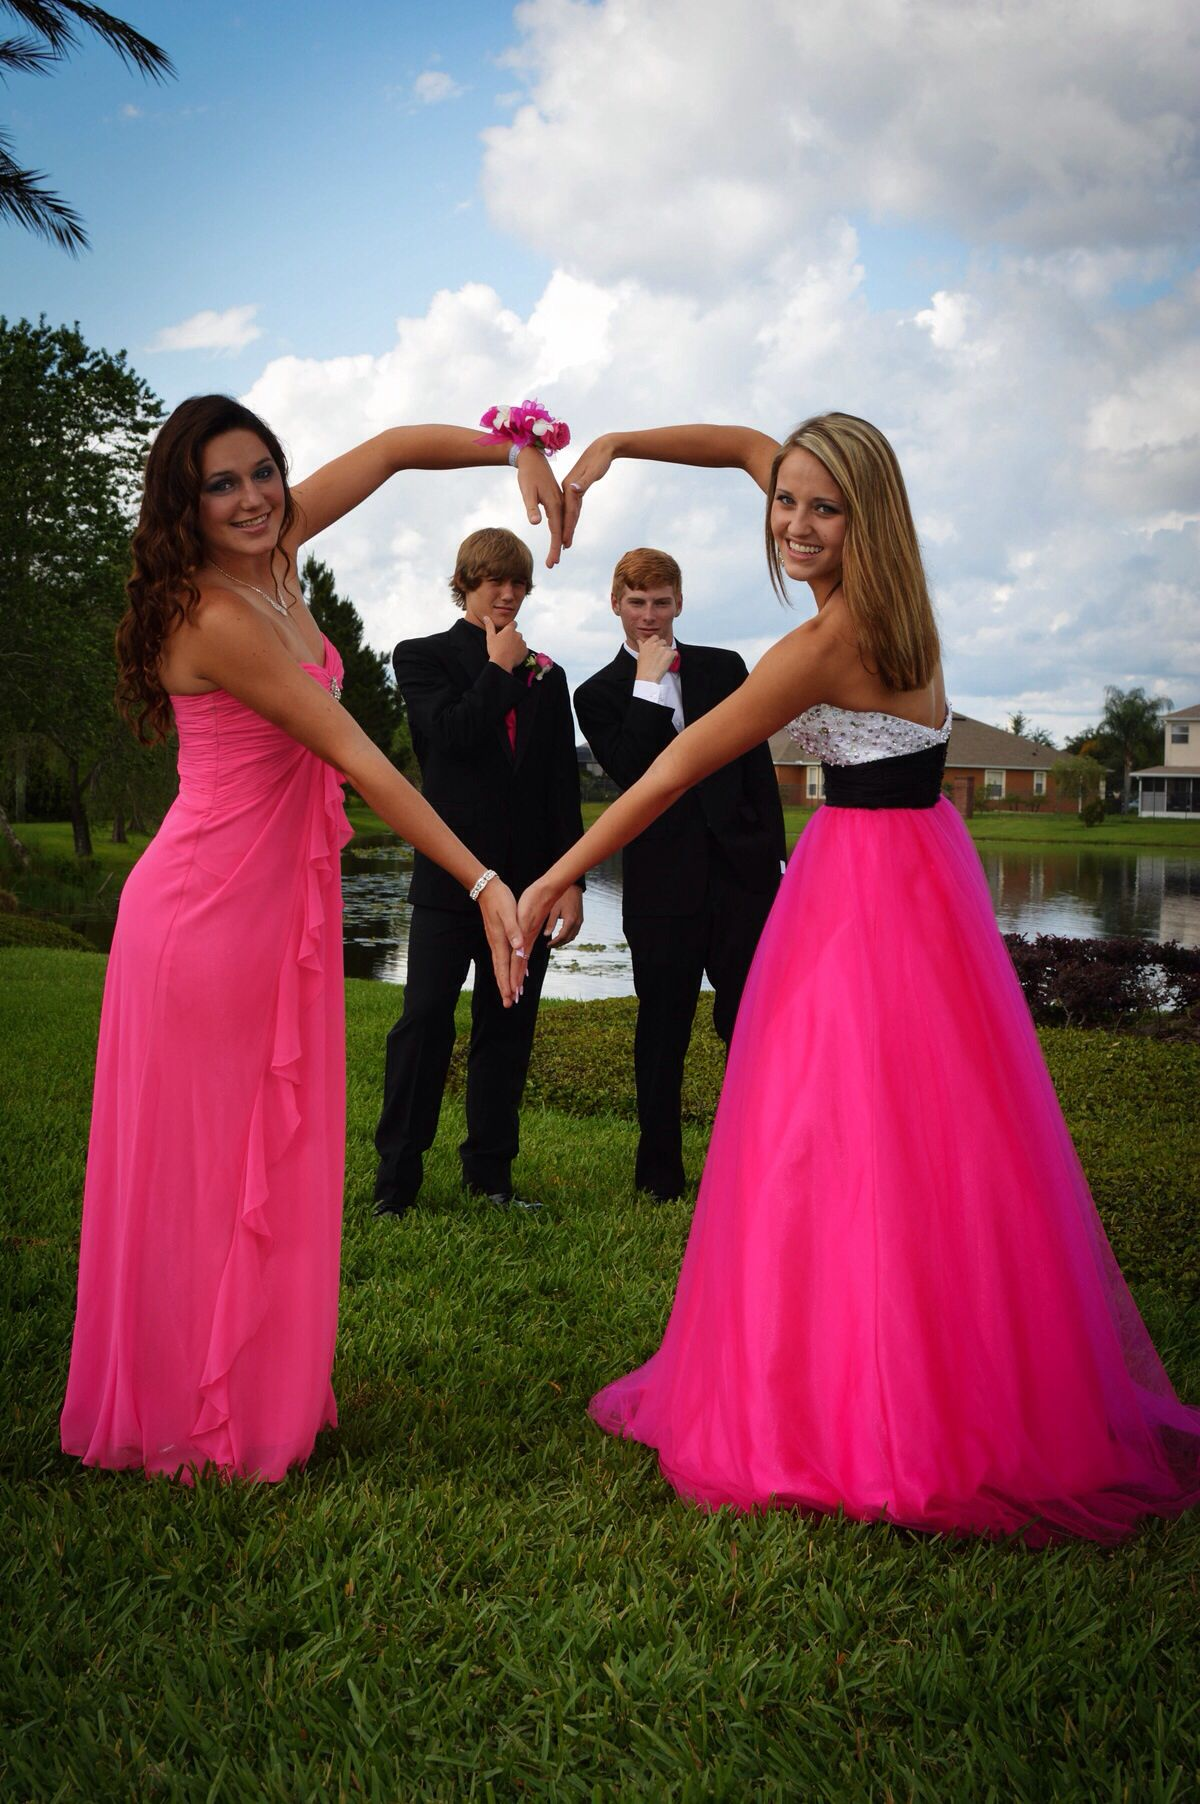 Best Friend Or Bfs Sister With Images Prom Picture Poses Prom